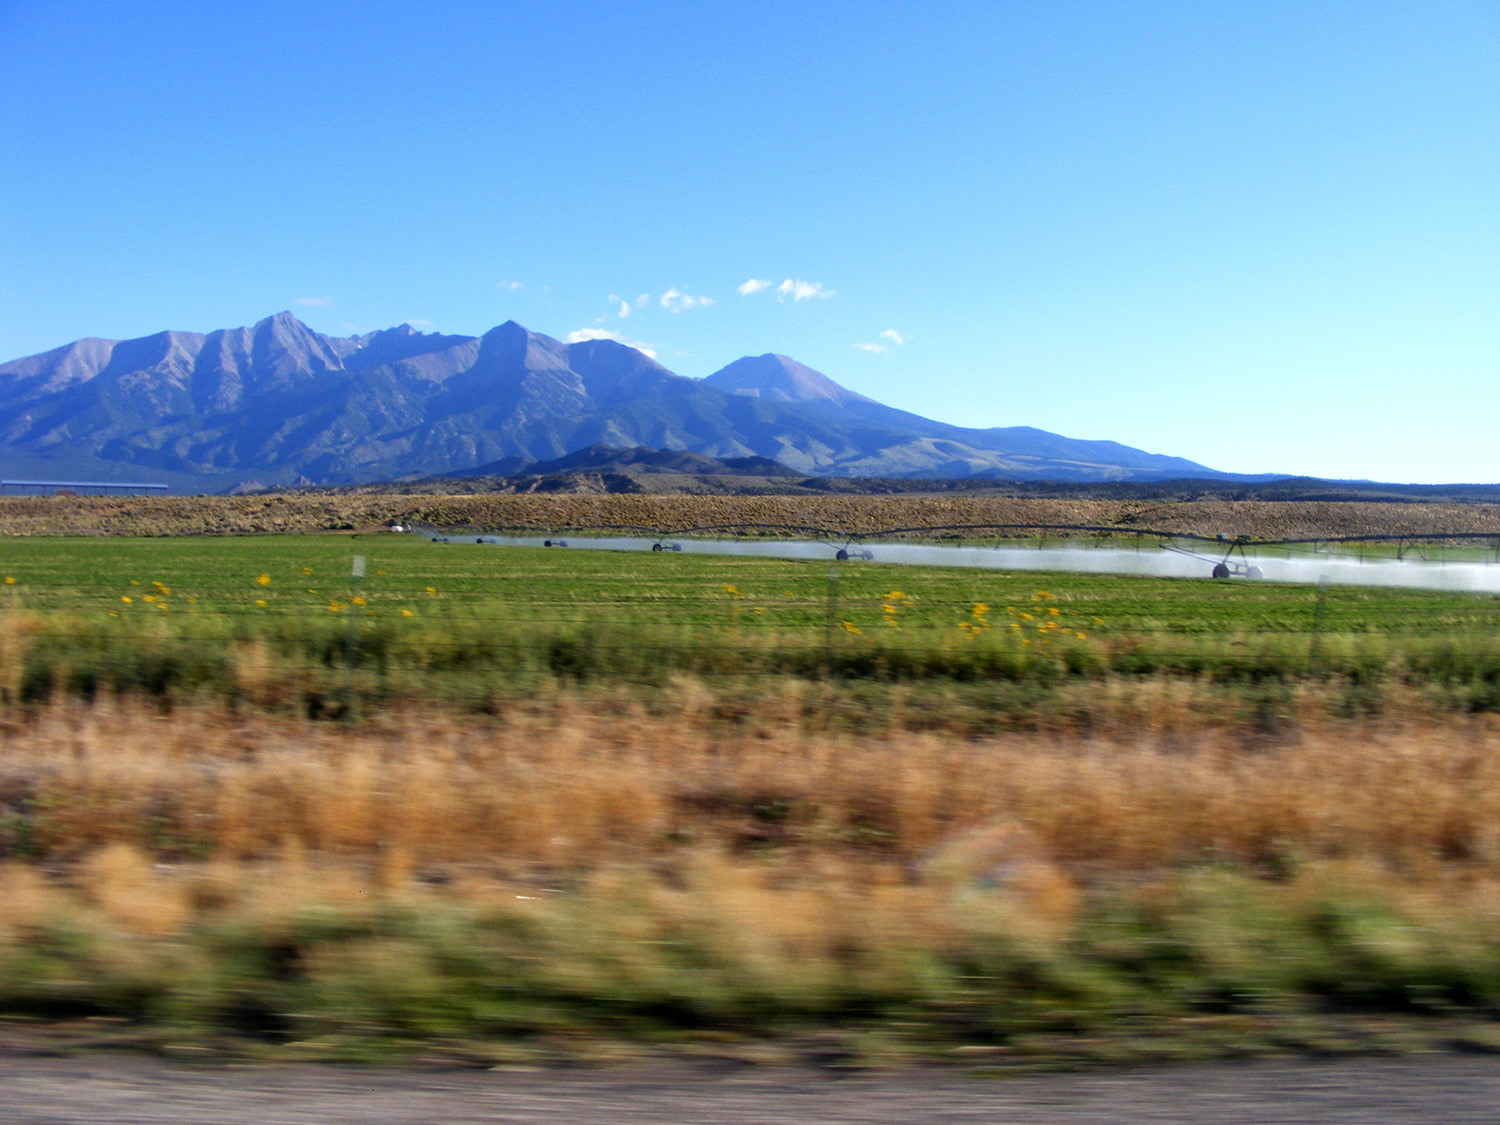 // Approaching the Rockies from Kansas